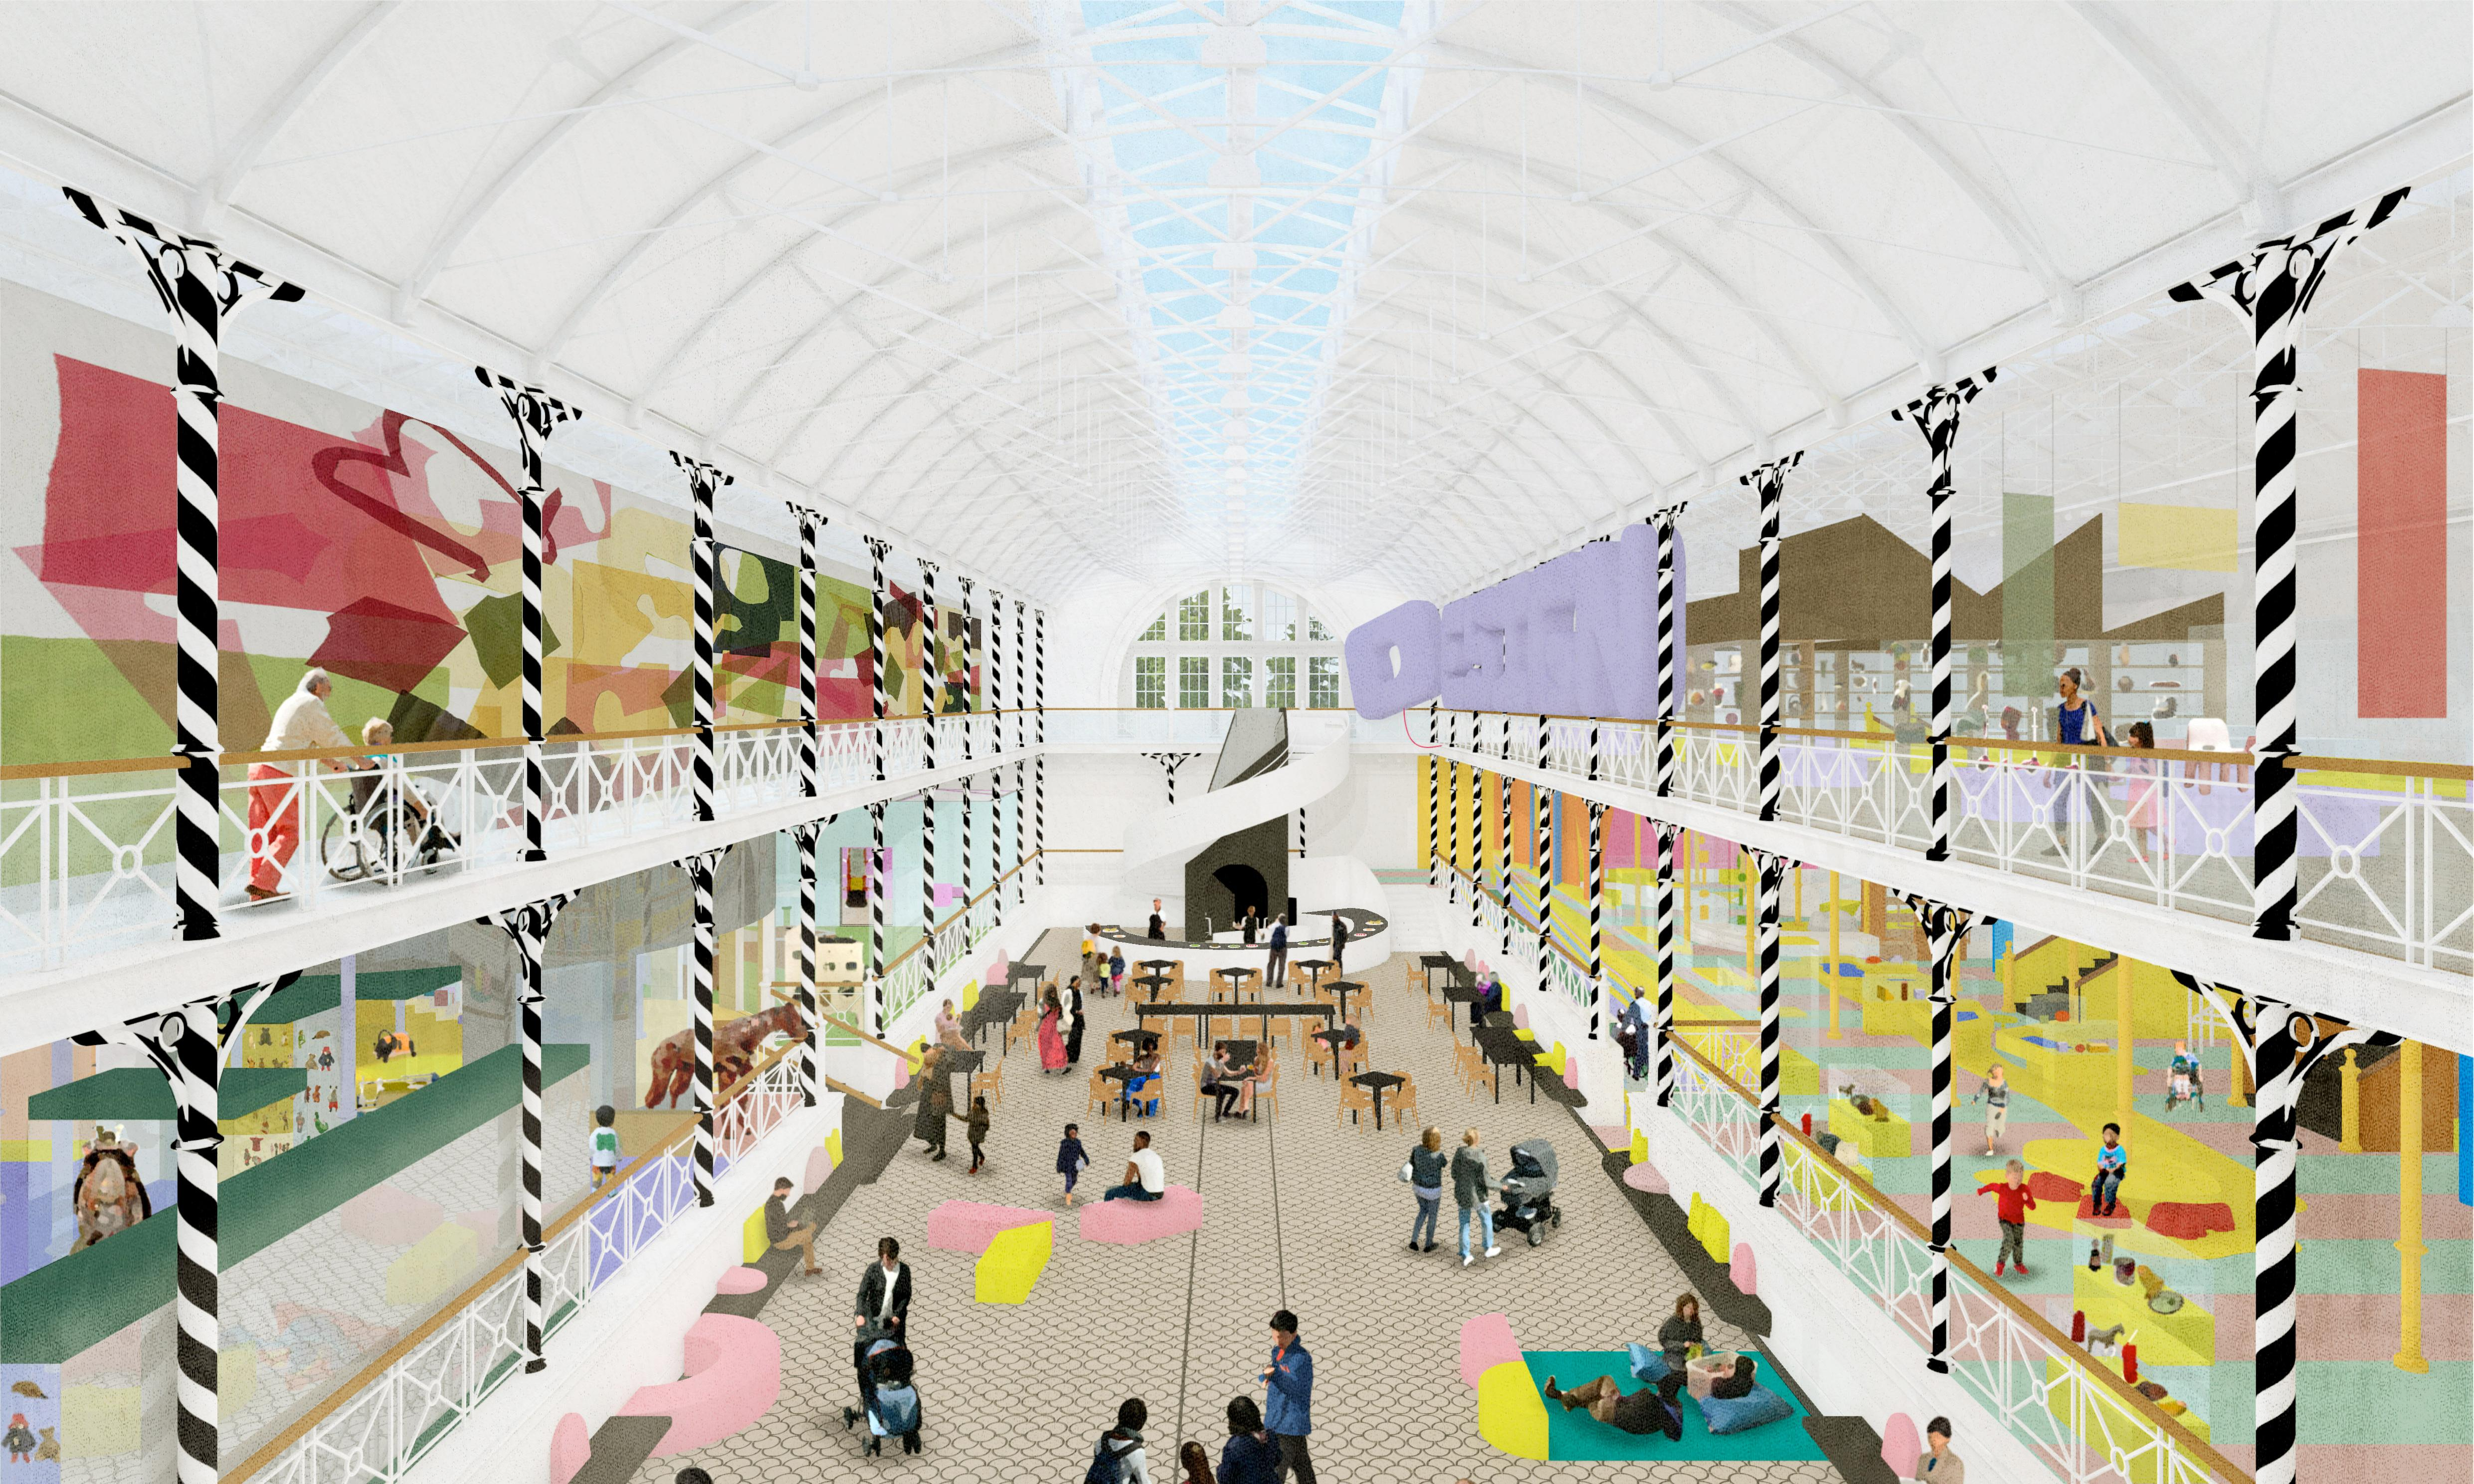 V&A Museum of Childhood to close for £13m revamp